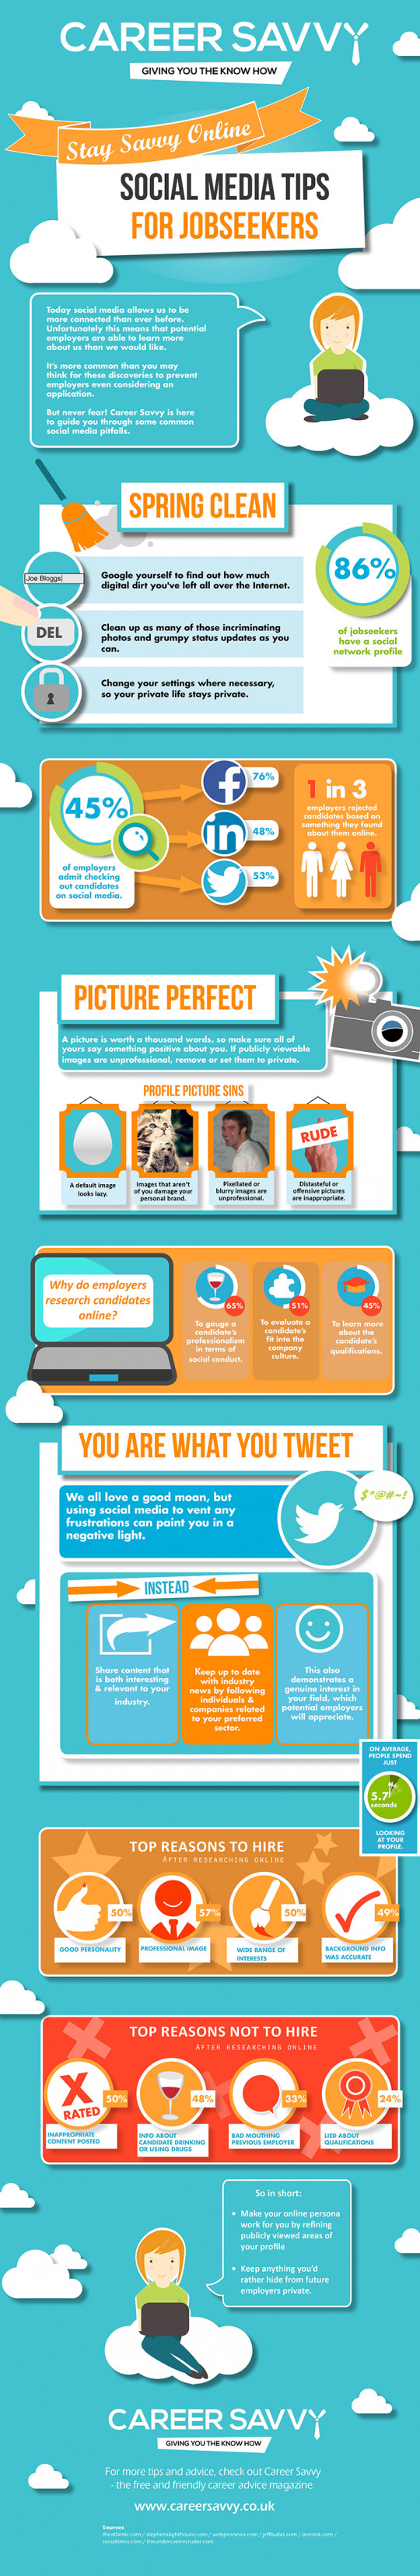 Stay Savvy Online Social Media Tips for Job Seekers